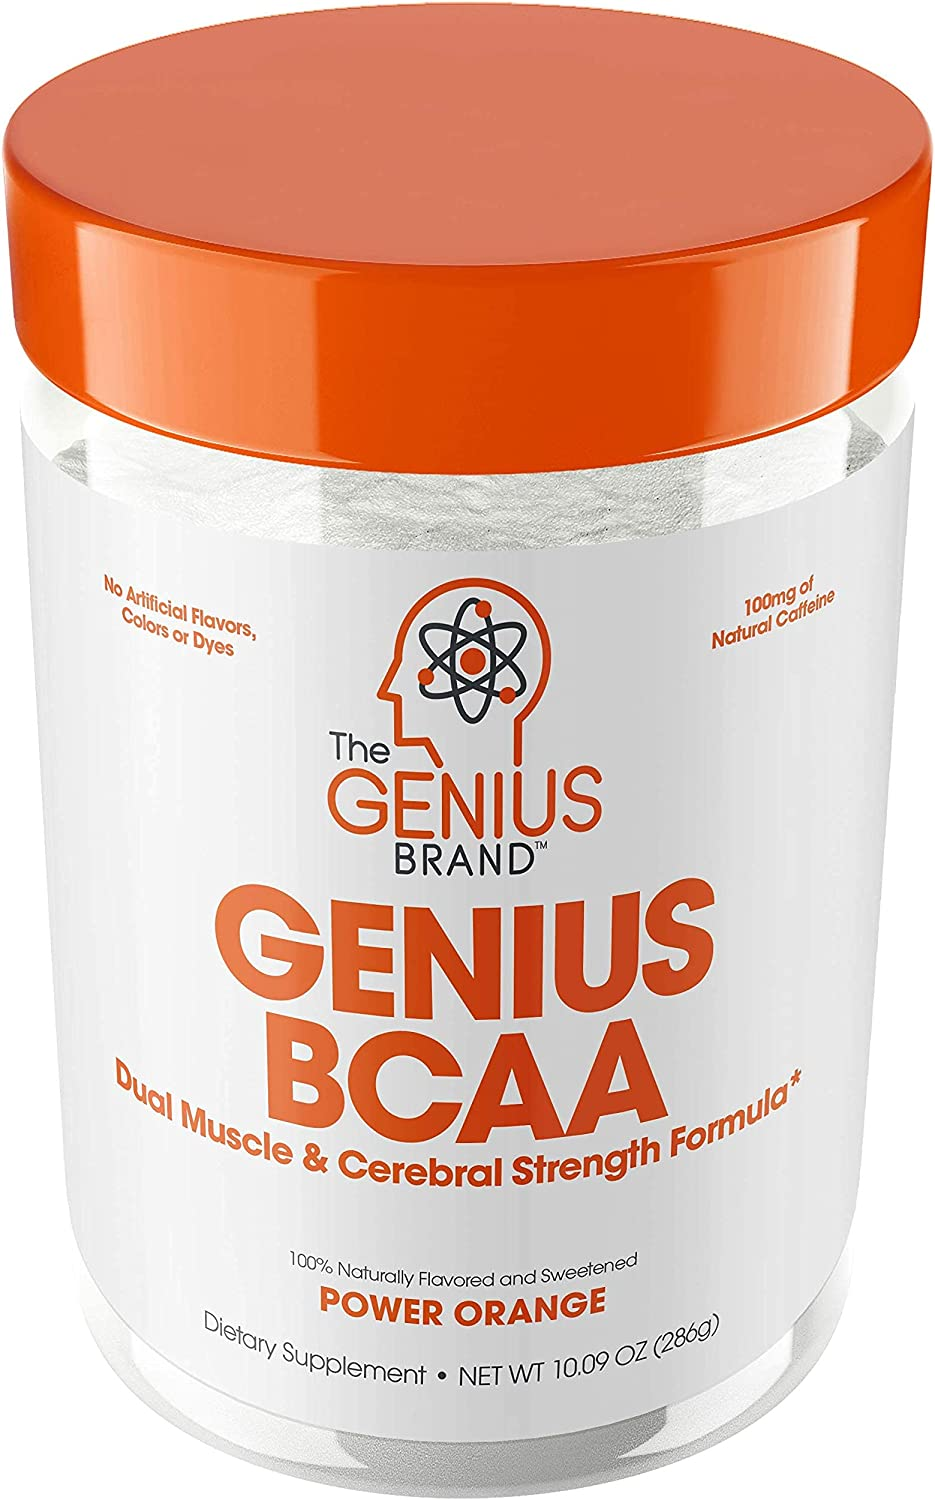 Genius Bcaa Powder with Focus & Energy – Multiuse Natural Vegan Preworkout Bcaas for Mental Clarity and Faster Muscle Recovery, Orange, 21sv, 286g